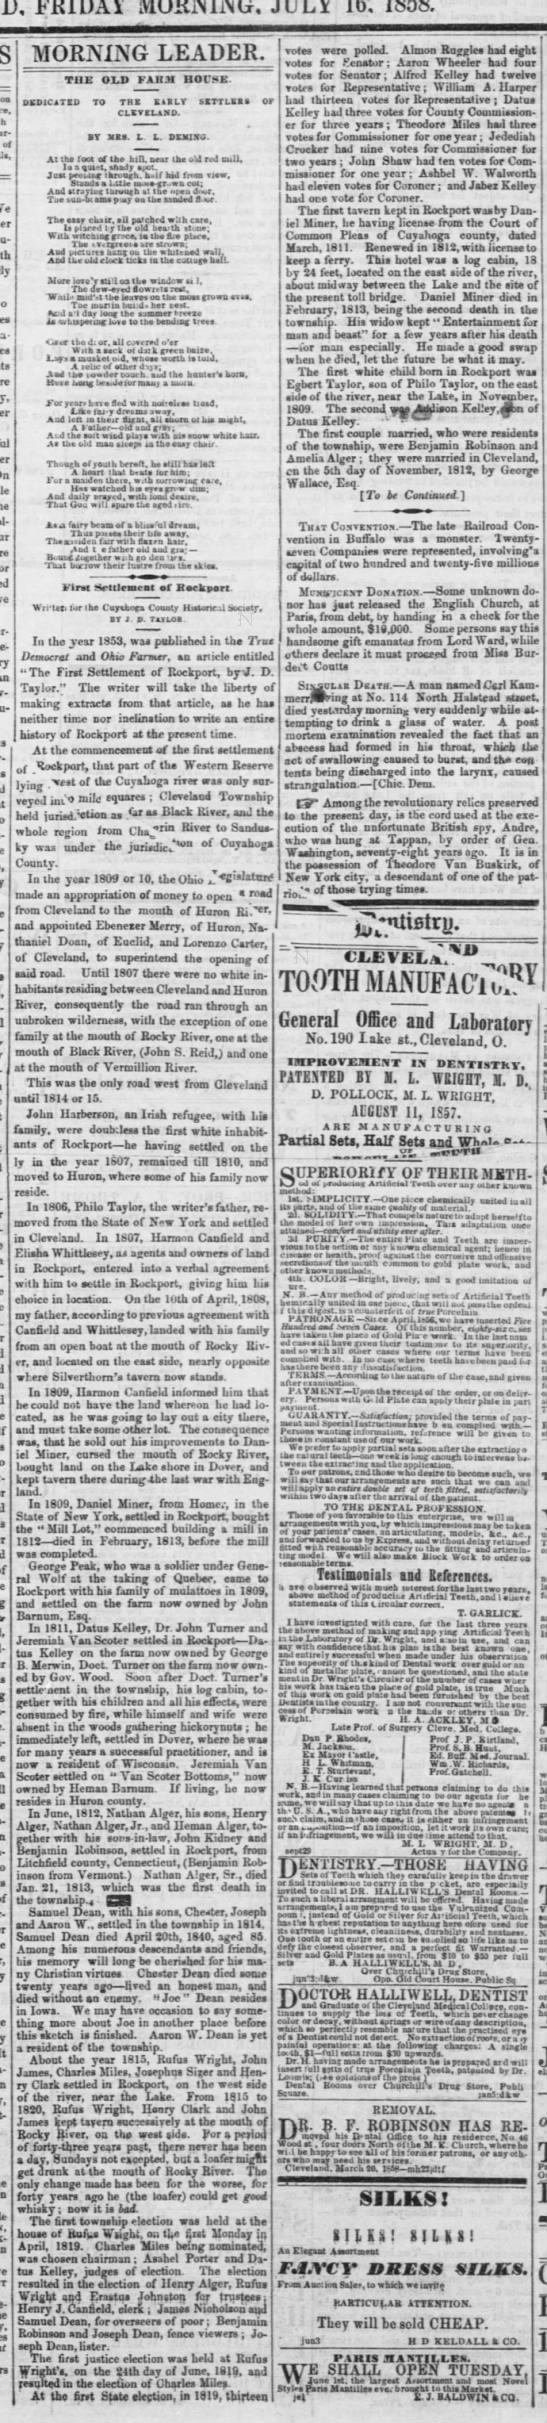 Early Cleveland history (1858 article) - FRIDAY MORNING. JULY at o ' a at ly in a...